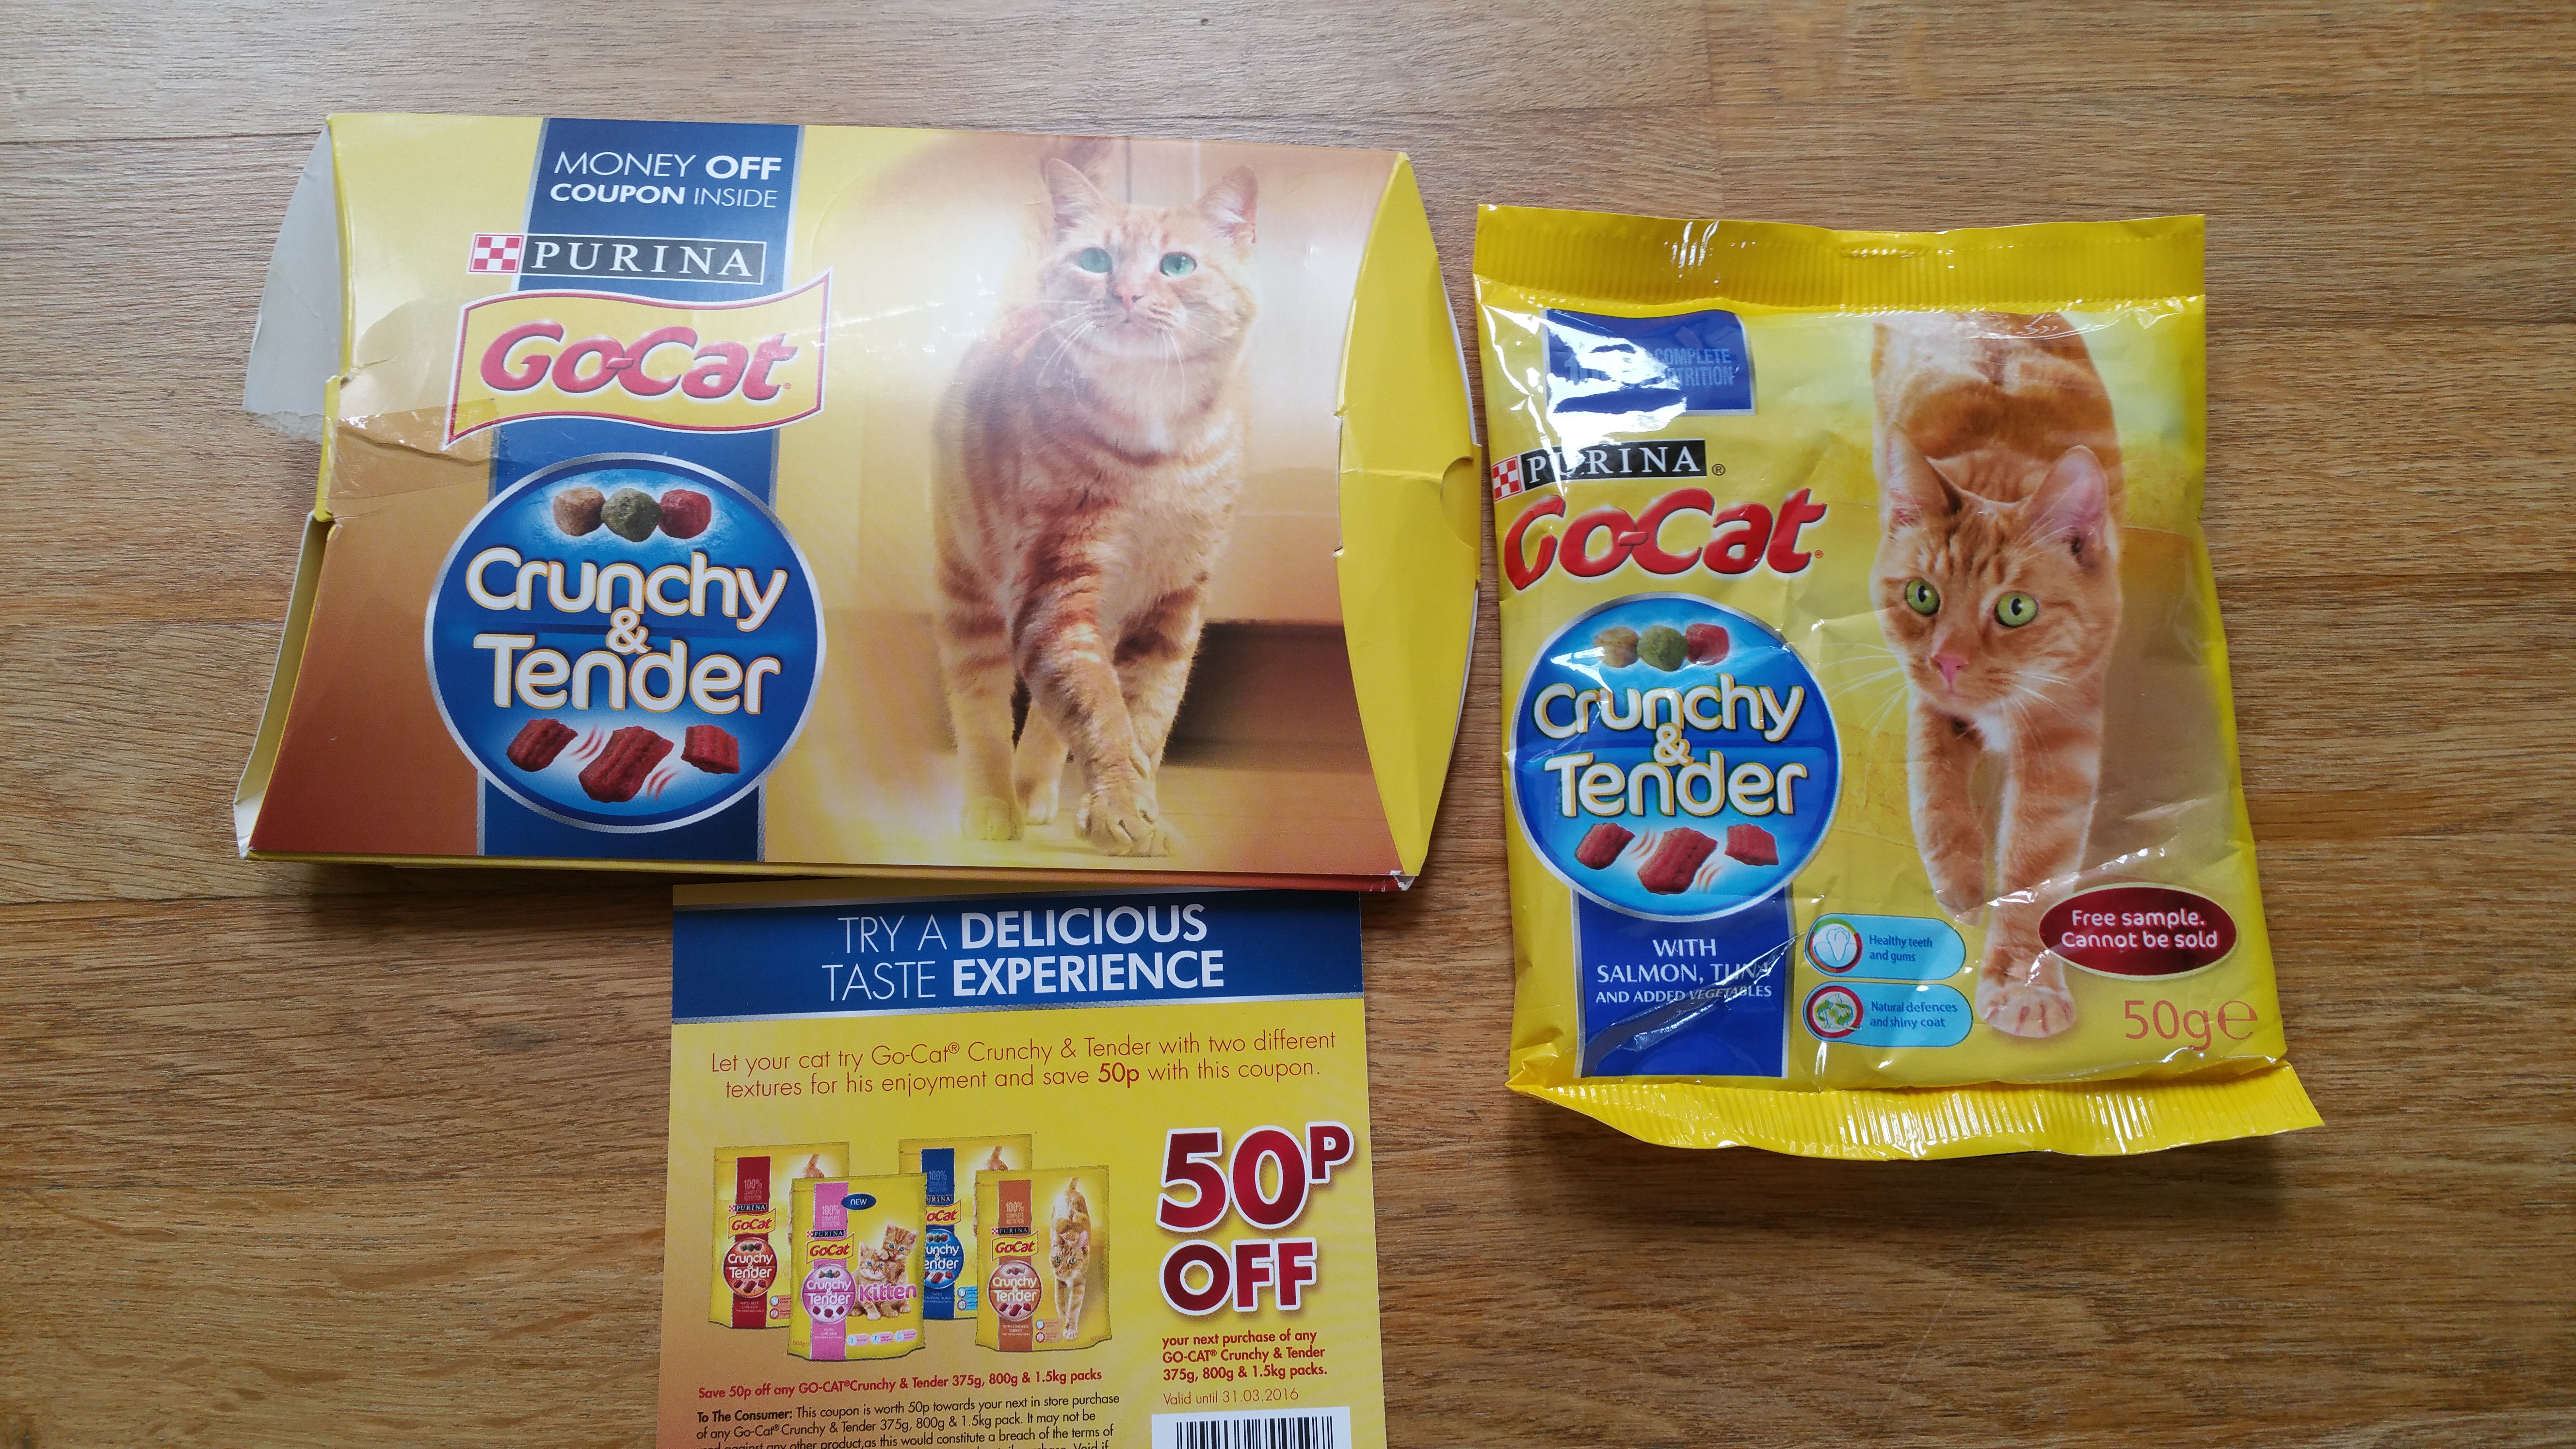 Go-Cat Crunchy & Tender Review